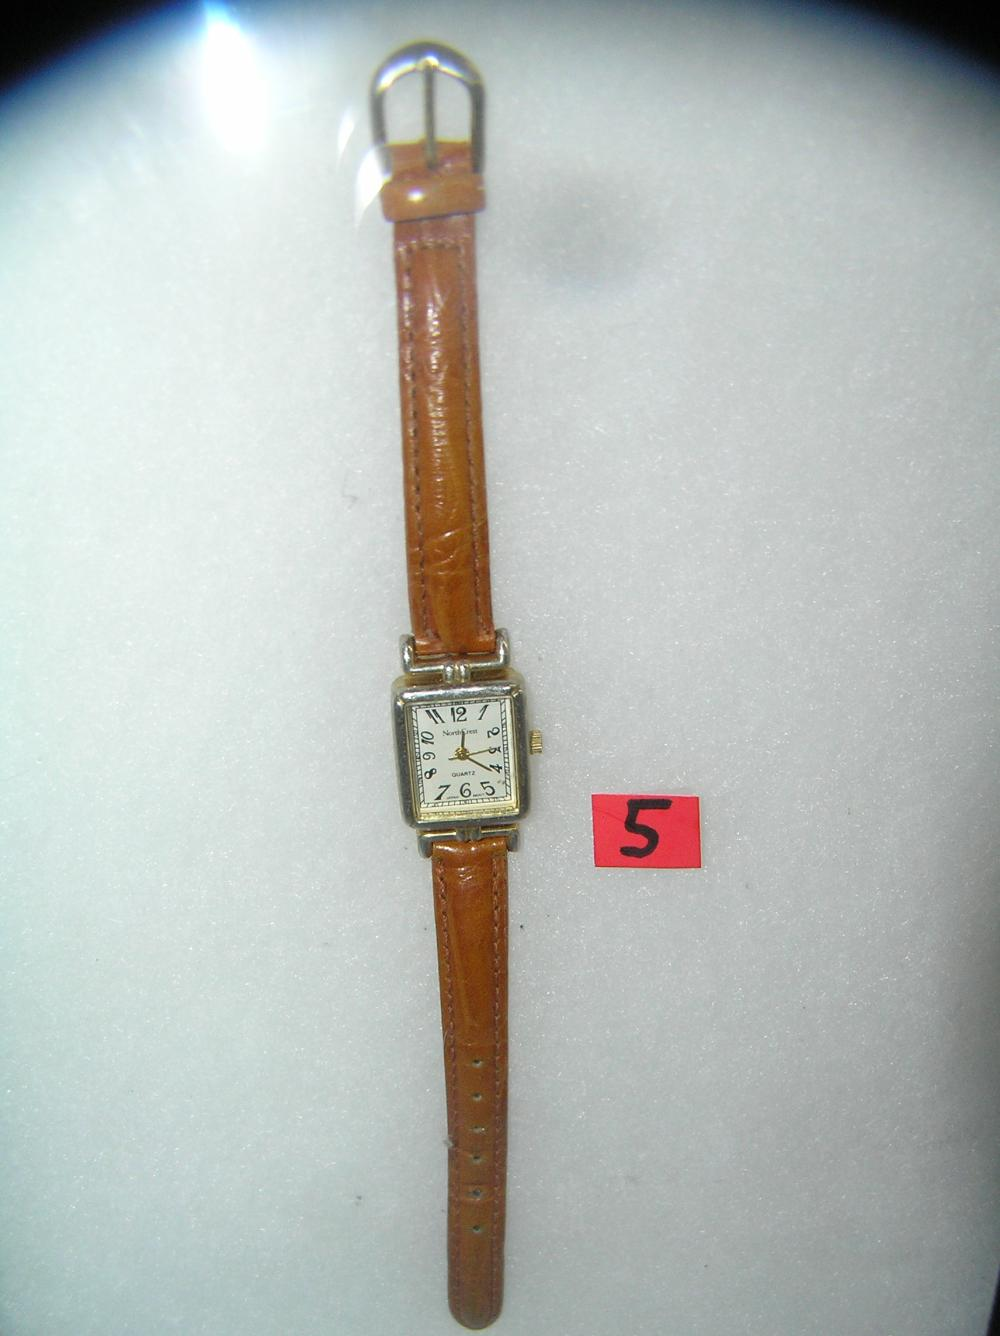 FASHIONABLE STYLE WRIST WATCH WITH BROWN LEATHER BAND